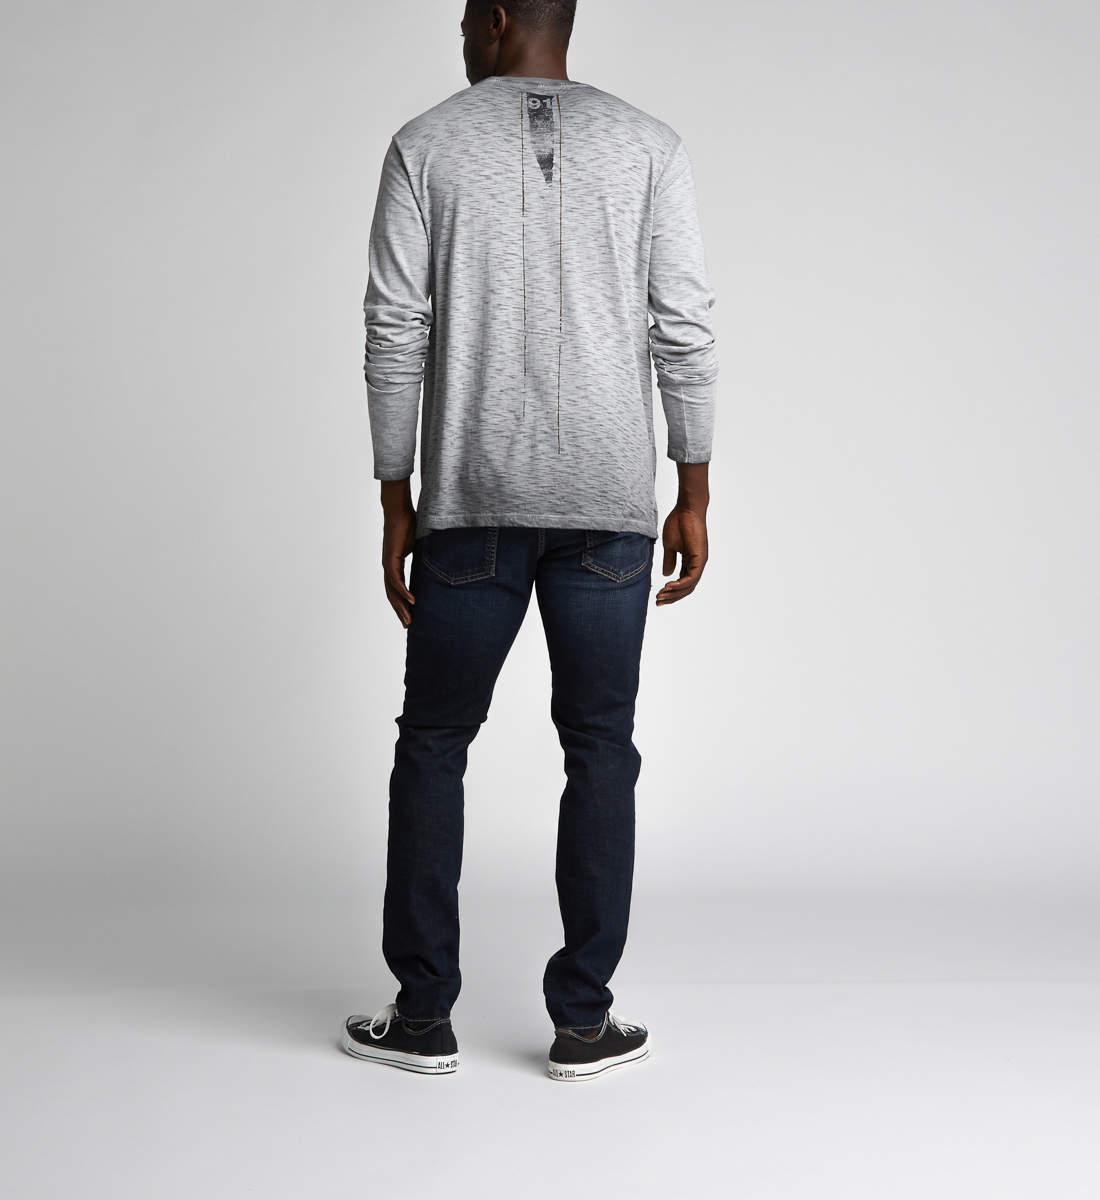 Raleigh Long-Sleeve Tee, , hi-res